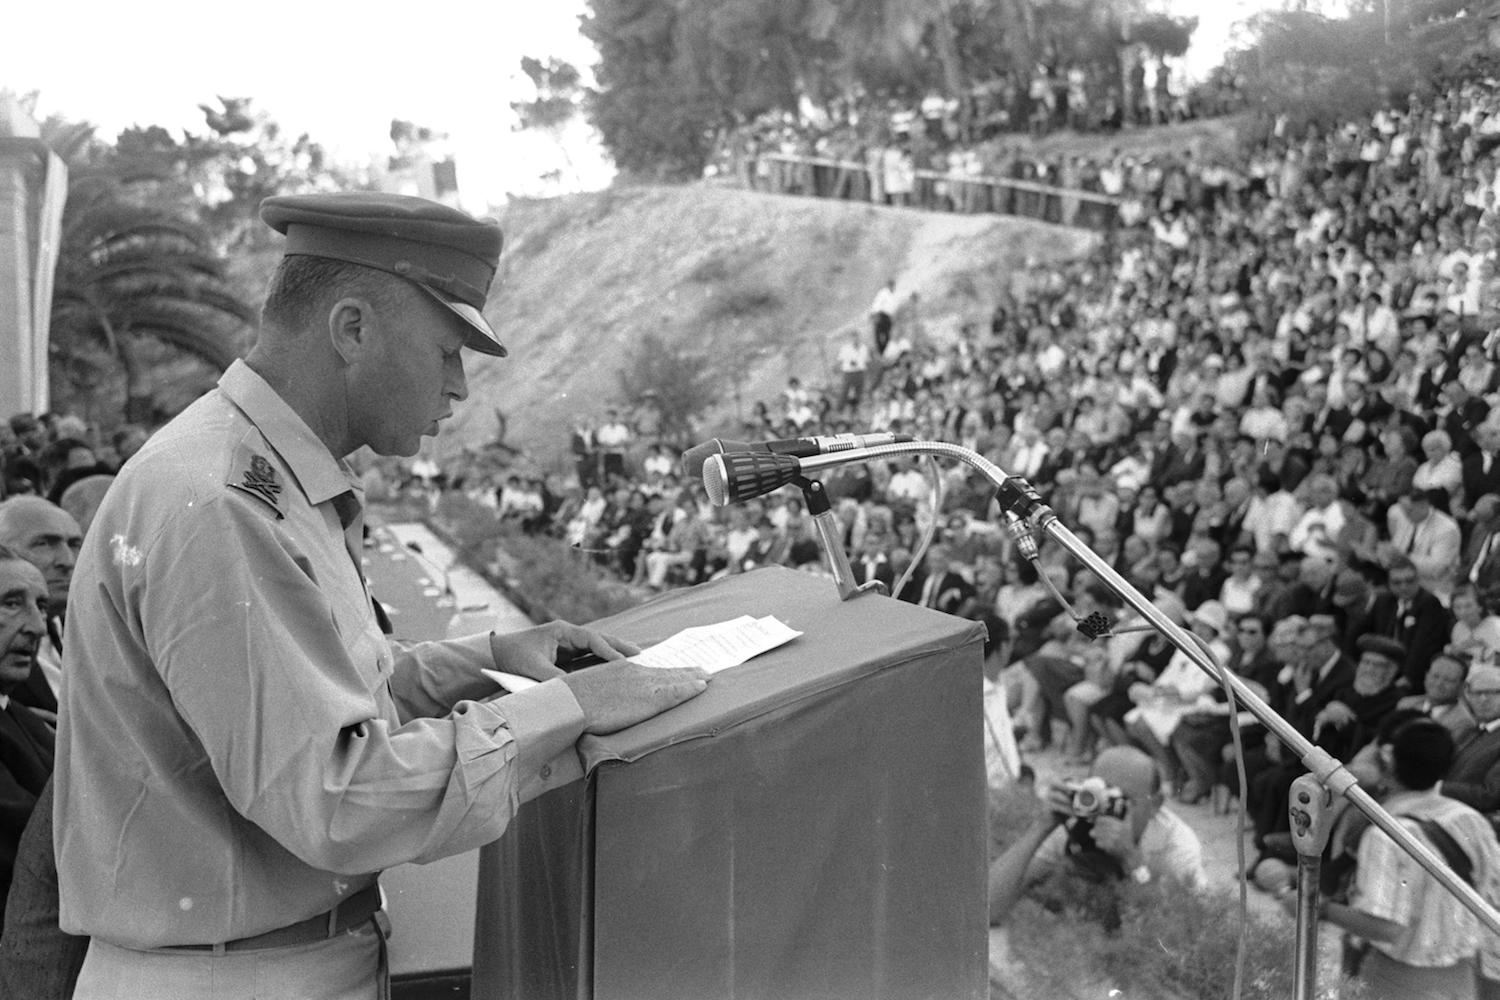 IDF Chief of Staff Yitzhak Rabin speaks at the Mount Scopus amphitheater after receiving an honorary doctorate from the Hebrew University at the end of the 1967 war, June 28, 1967. (Ilan Bruner/GPO)